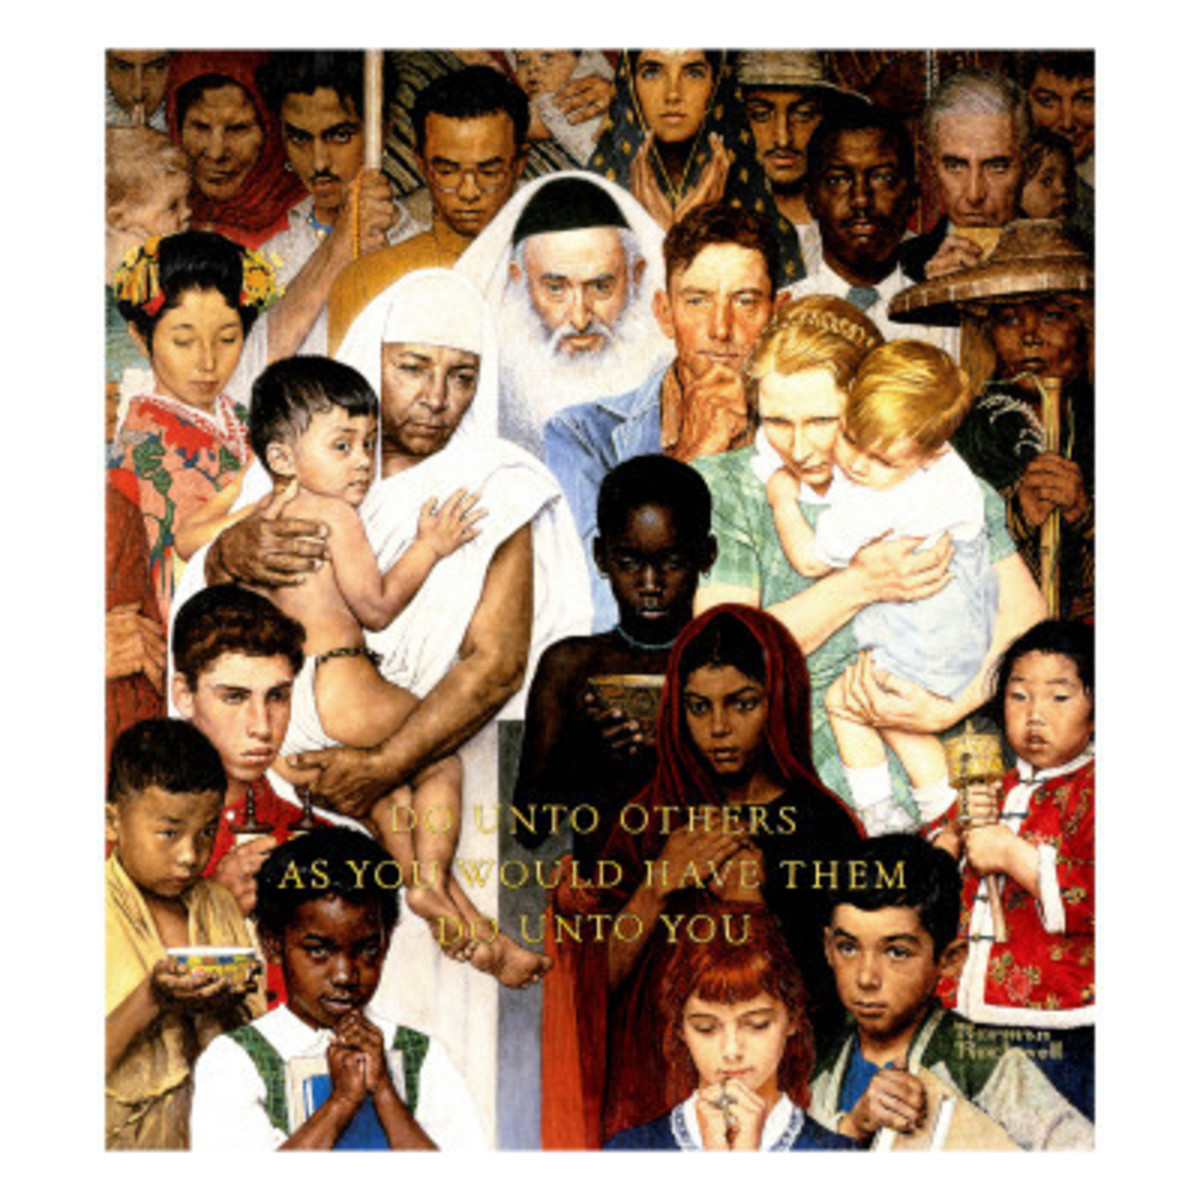 """Golden Rule"" by Norman Rockwell - A man in touch with the powerful social movements of his time, Rockwell made the more prosaic or simply less well-informed of us think with his multi-colored crowd of worshipers from many faiths"